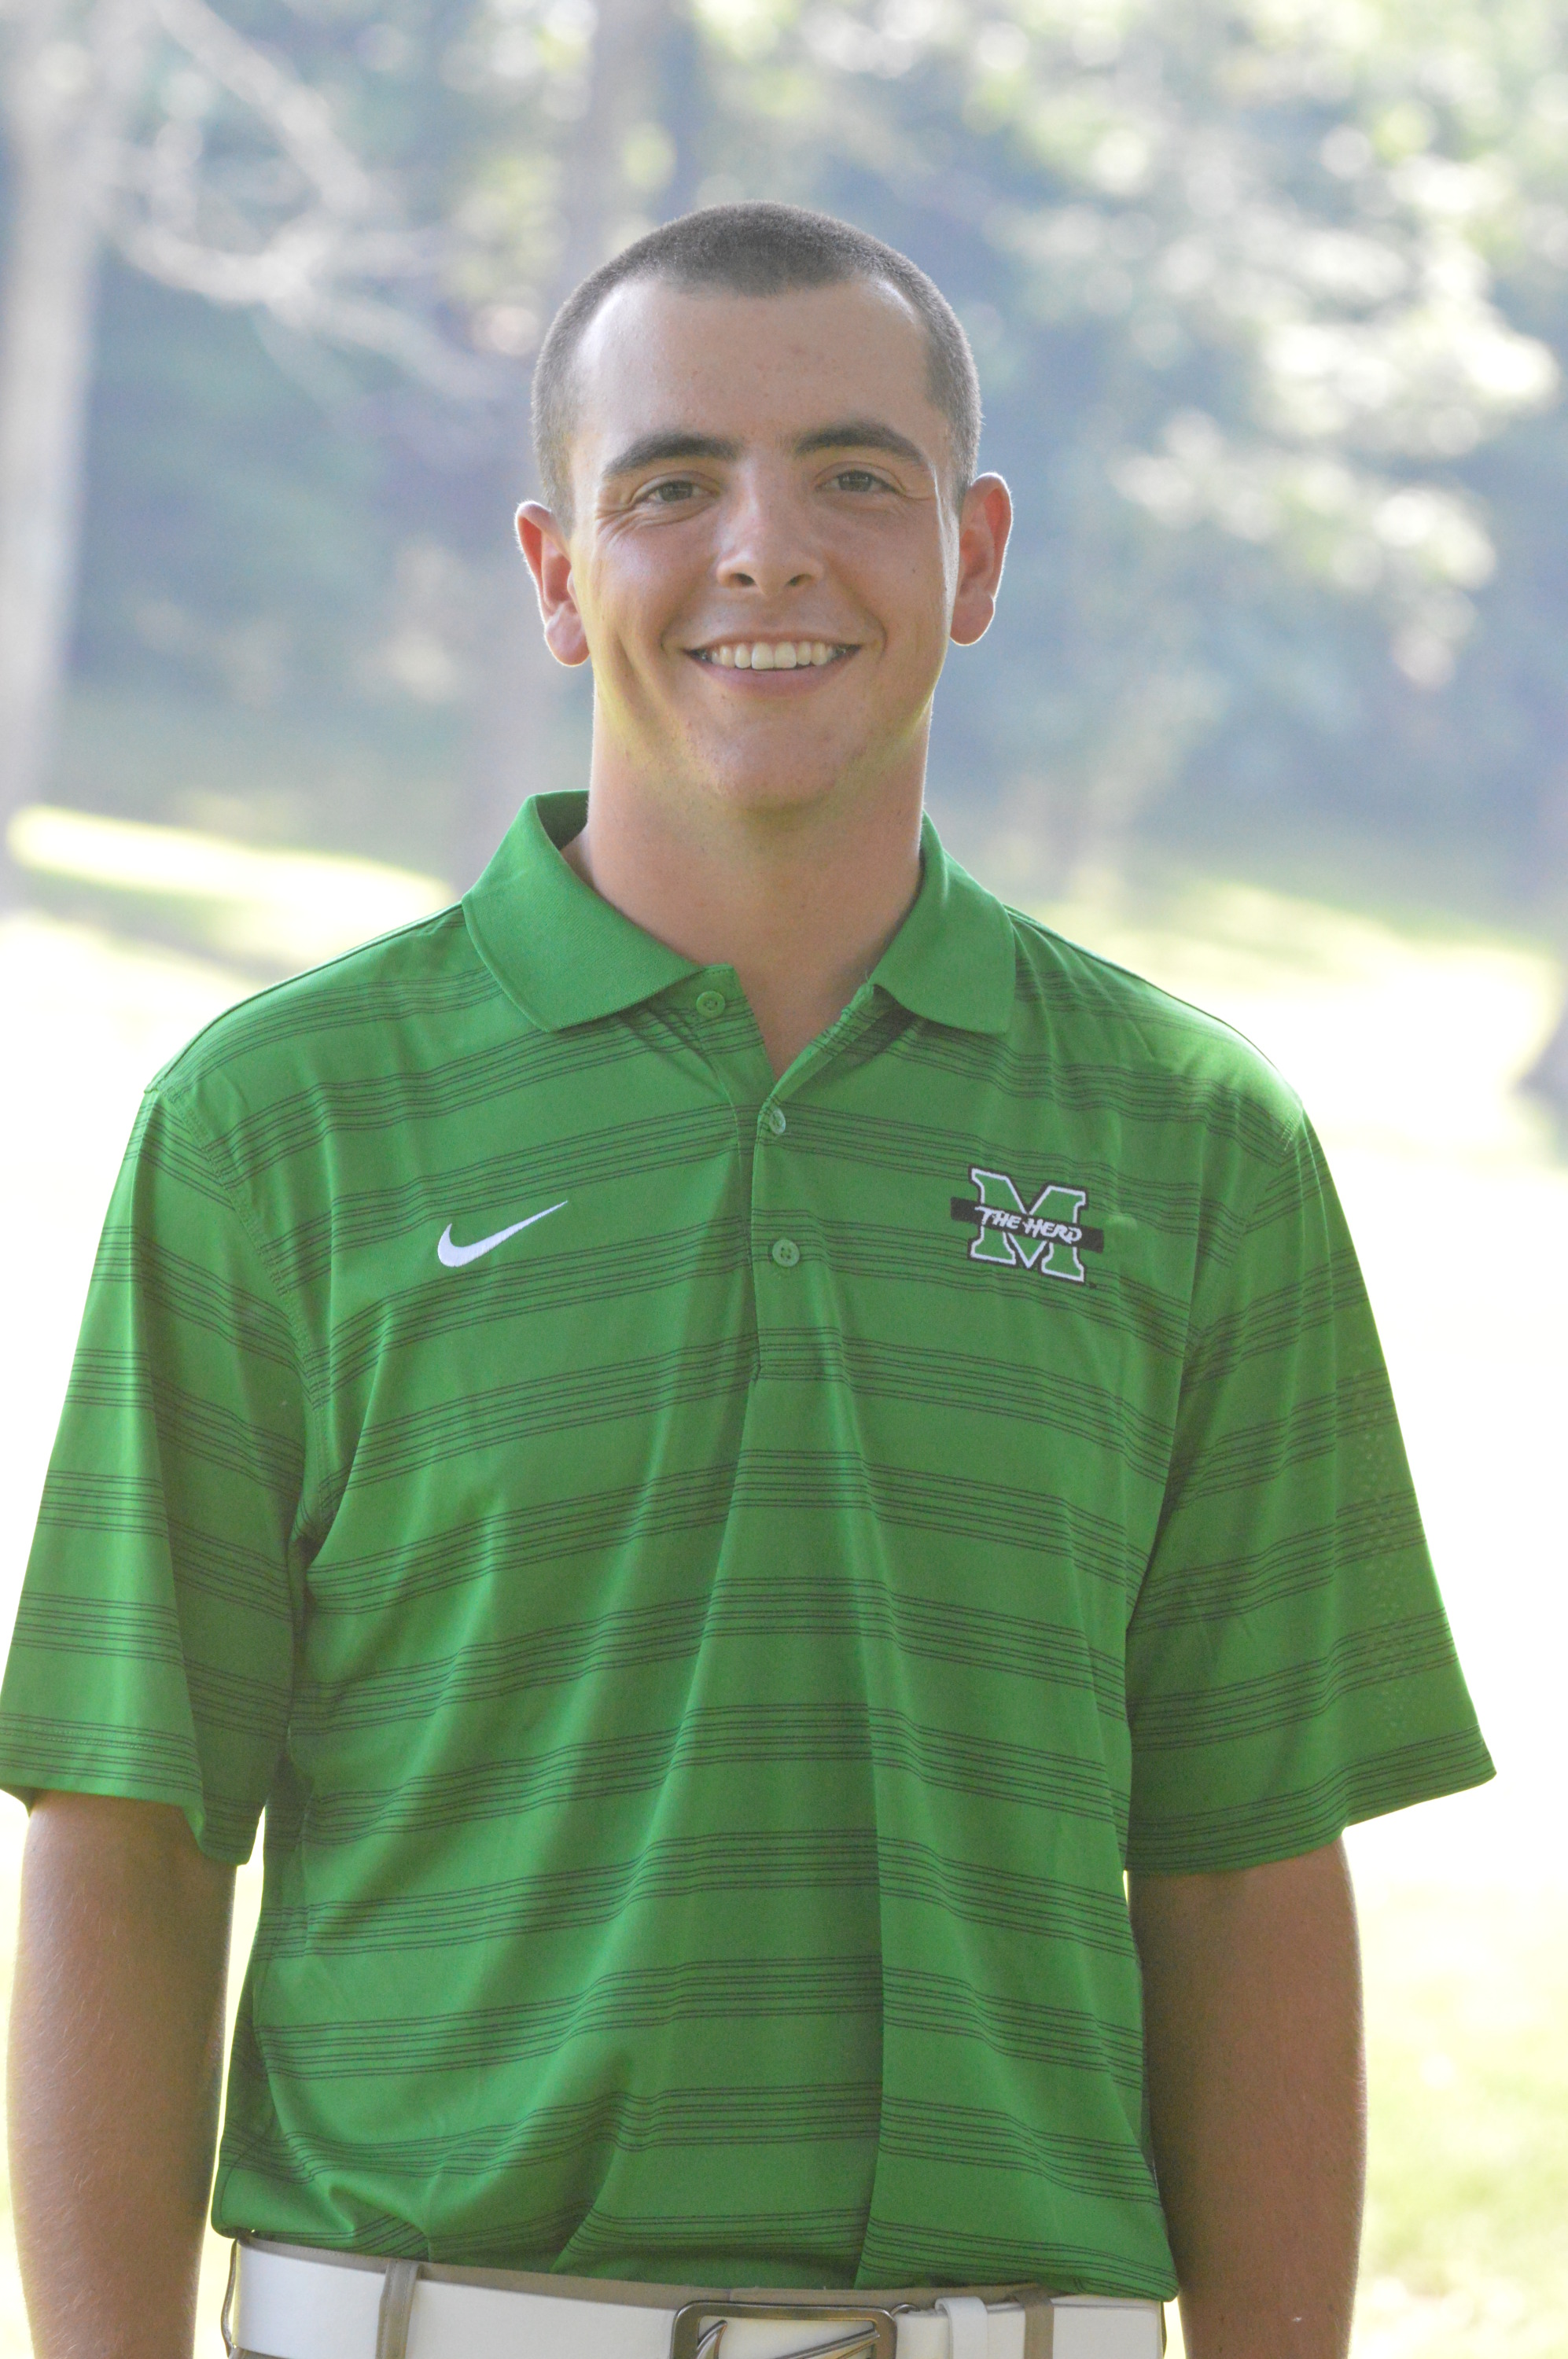 Weiss had the Herd's low score of 9-over-par 153 through 36 holes.